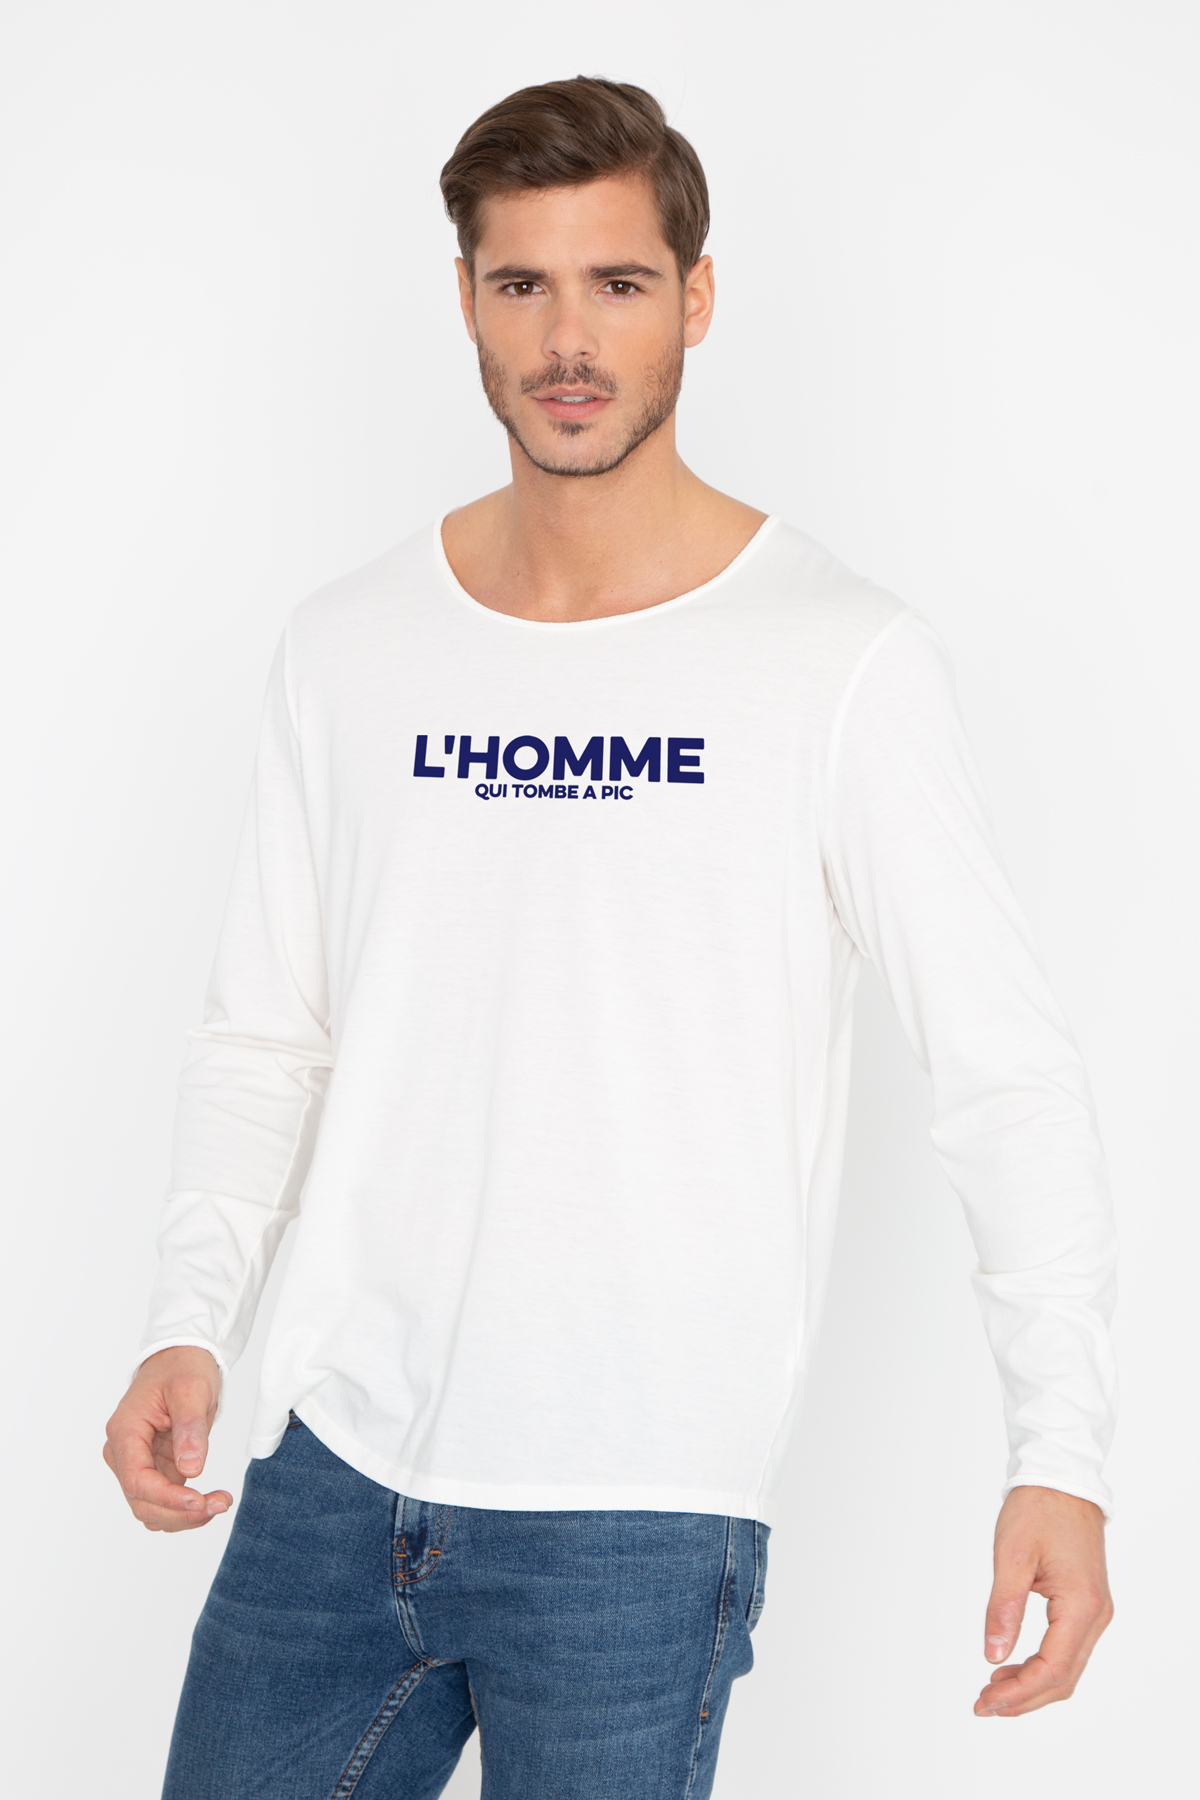 Photo de Soldes homme Tshirt Percy L'HOMME QUI TOMBE A PIC chez French Disorder